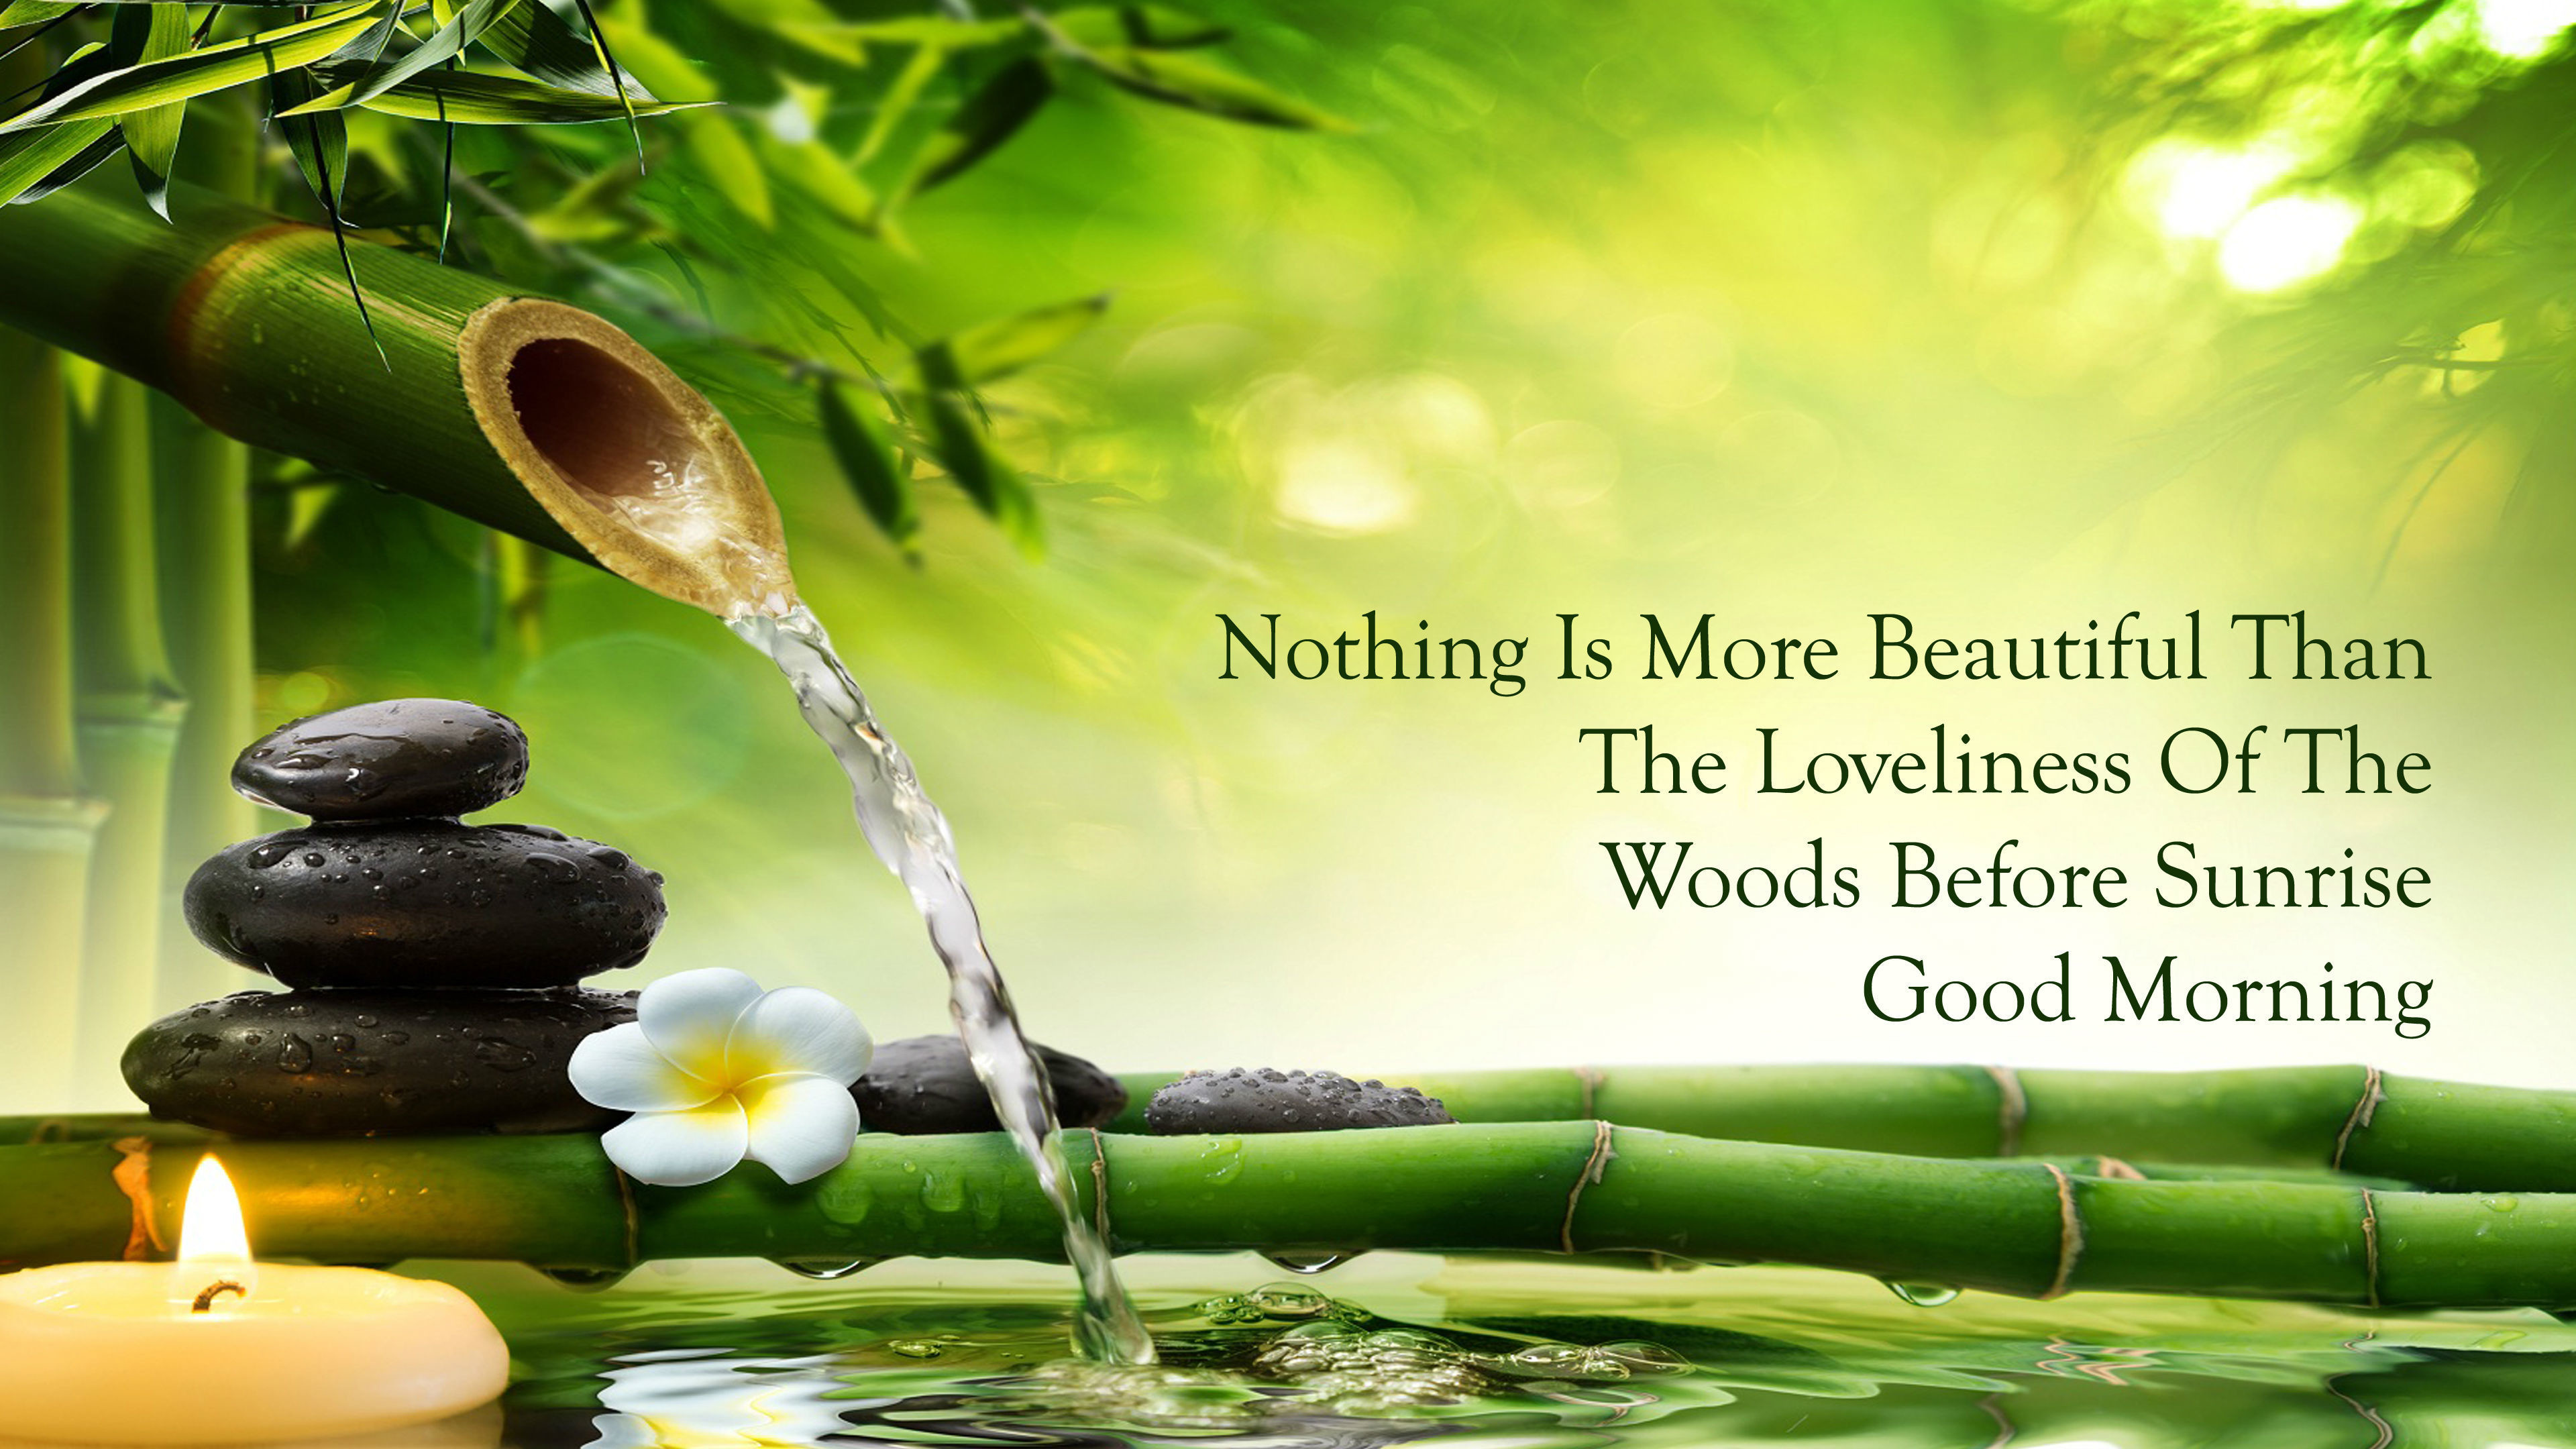 3840x2160 ... Good Morning Images With Nature Quotes 17 Desktop Good Morning Nature K  Ultra Hd A With ...